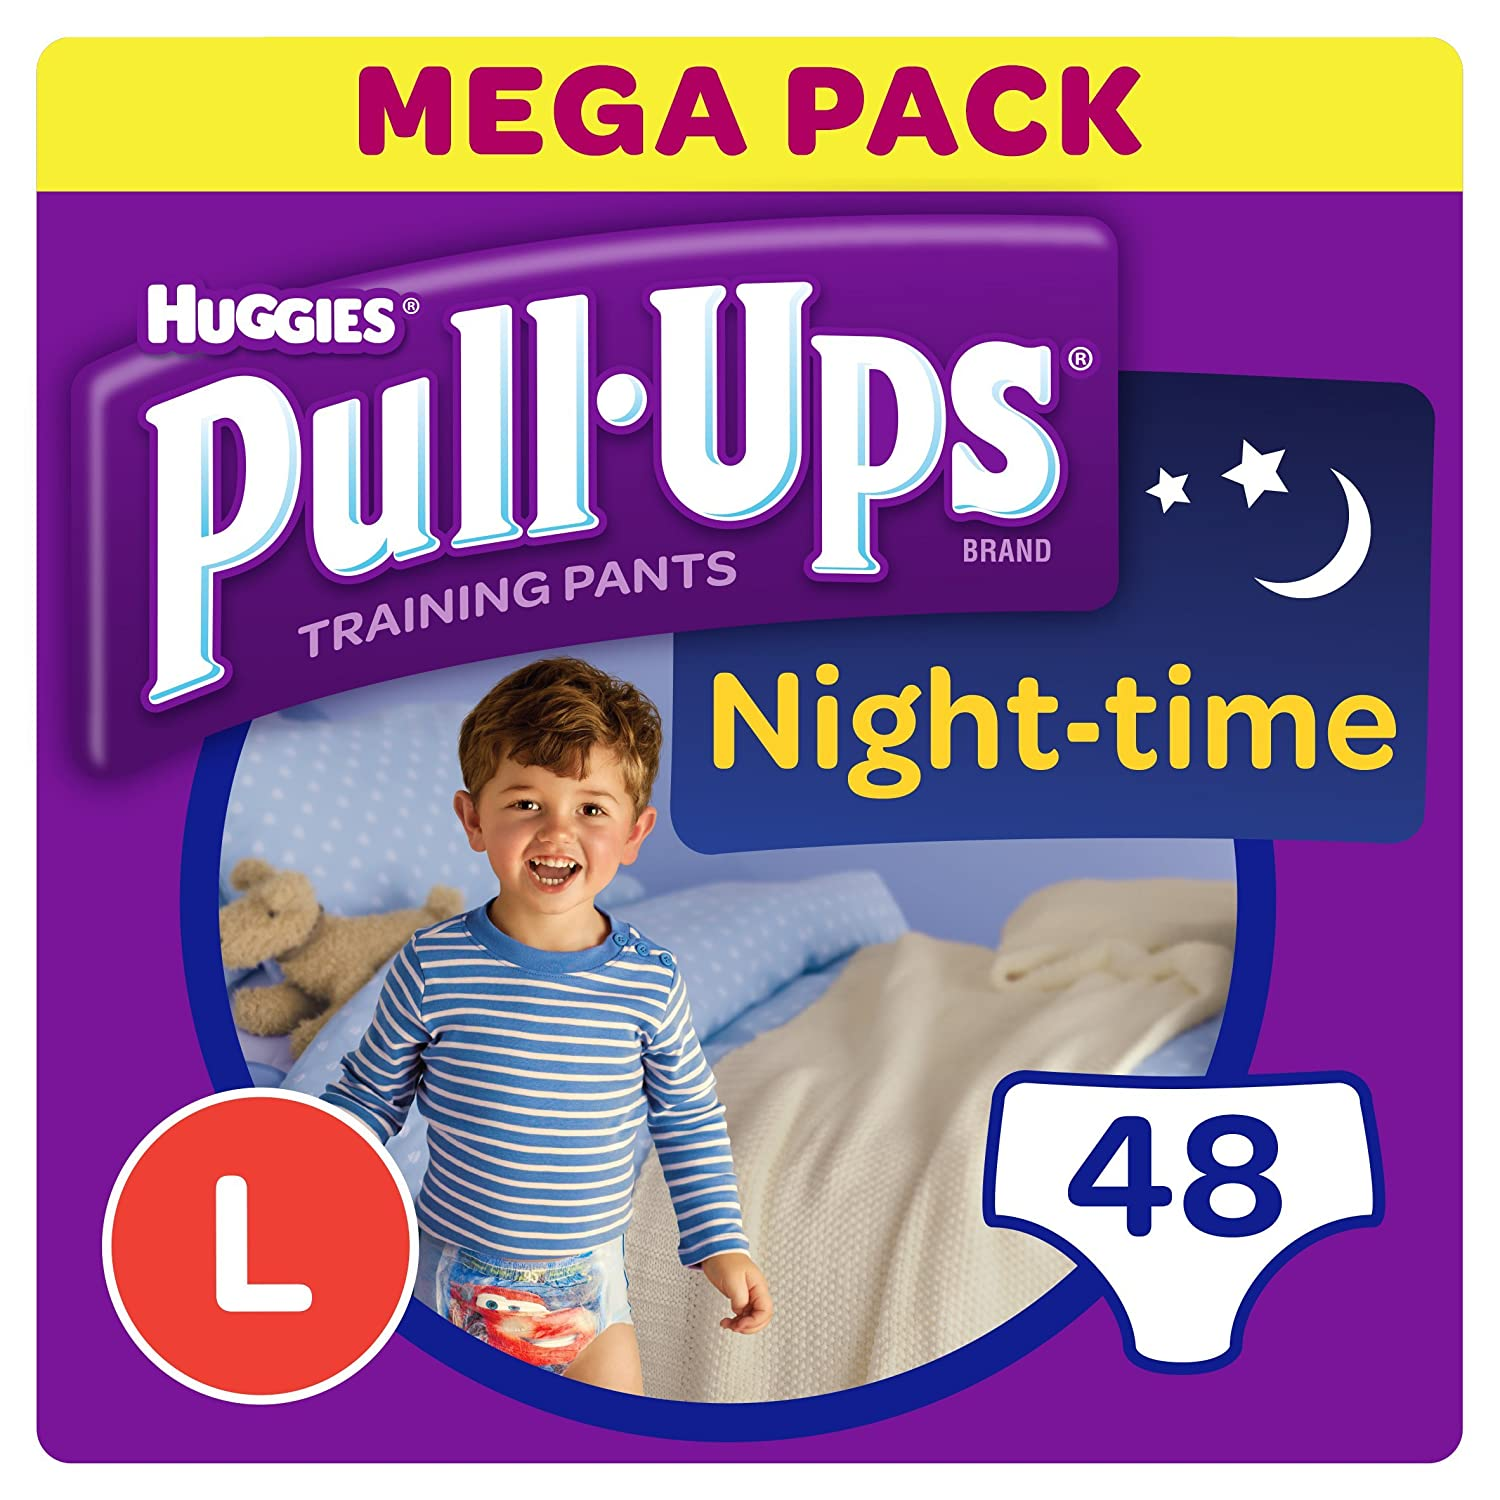 Huggies Pull-Ups Night Time Potty Training Pants for Boys, Large, 48 Pants Kimberly-Clark 2920831